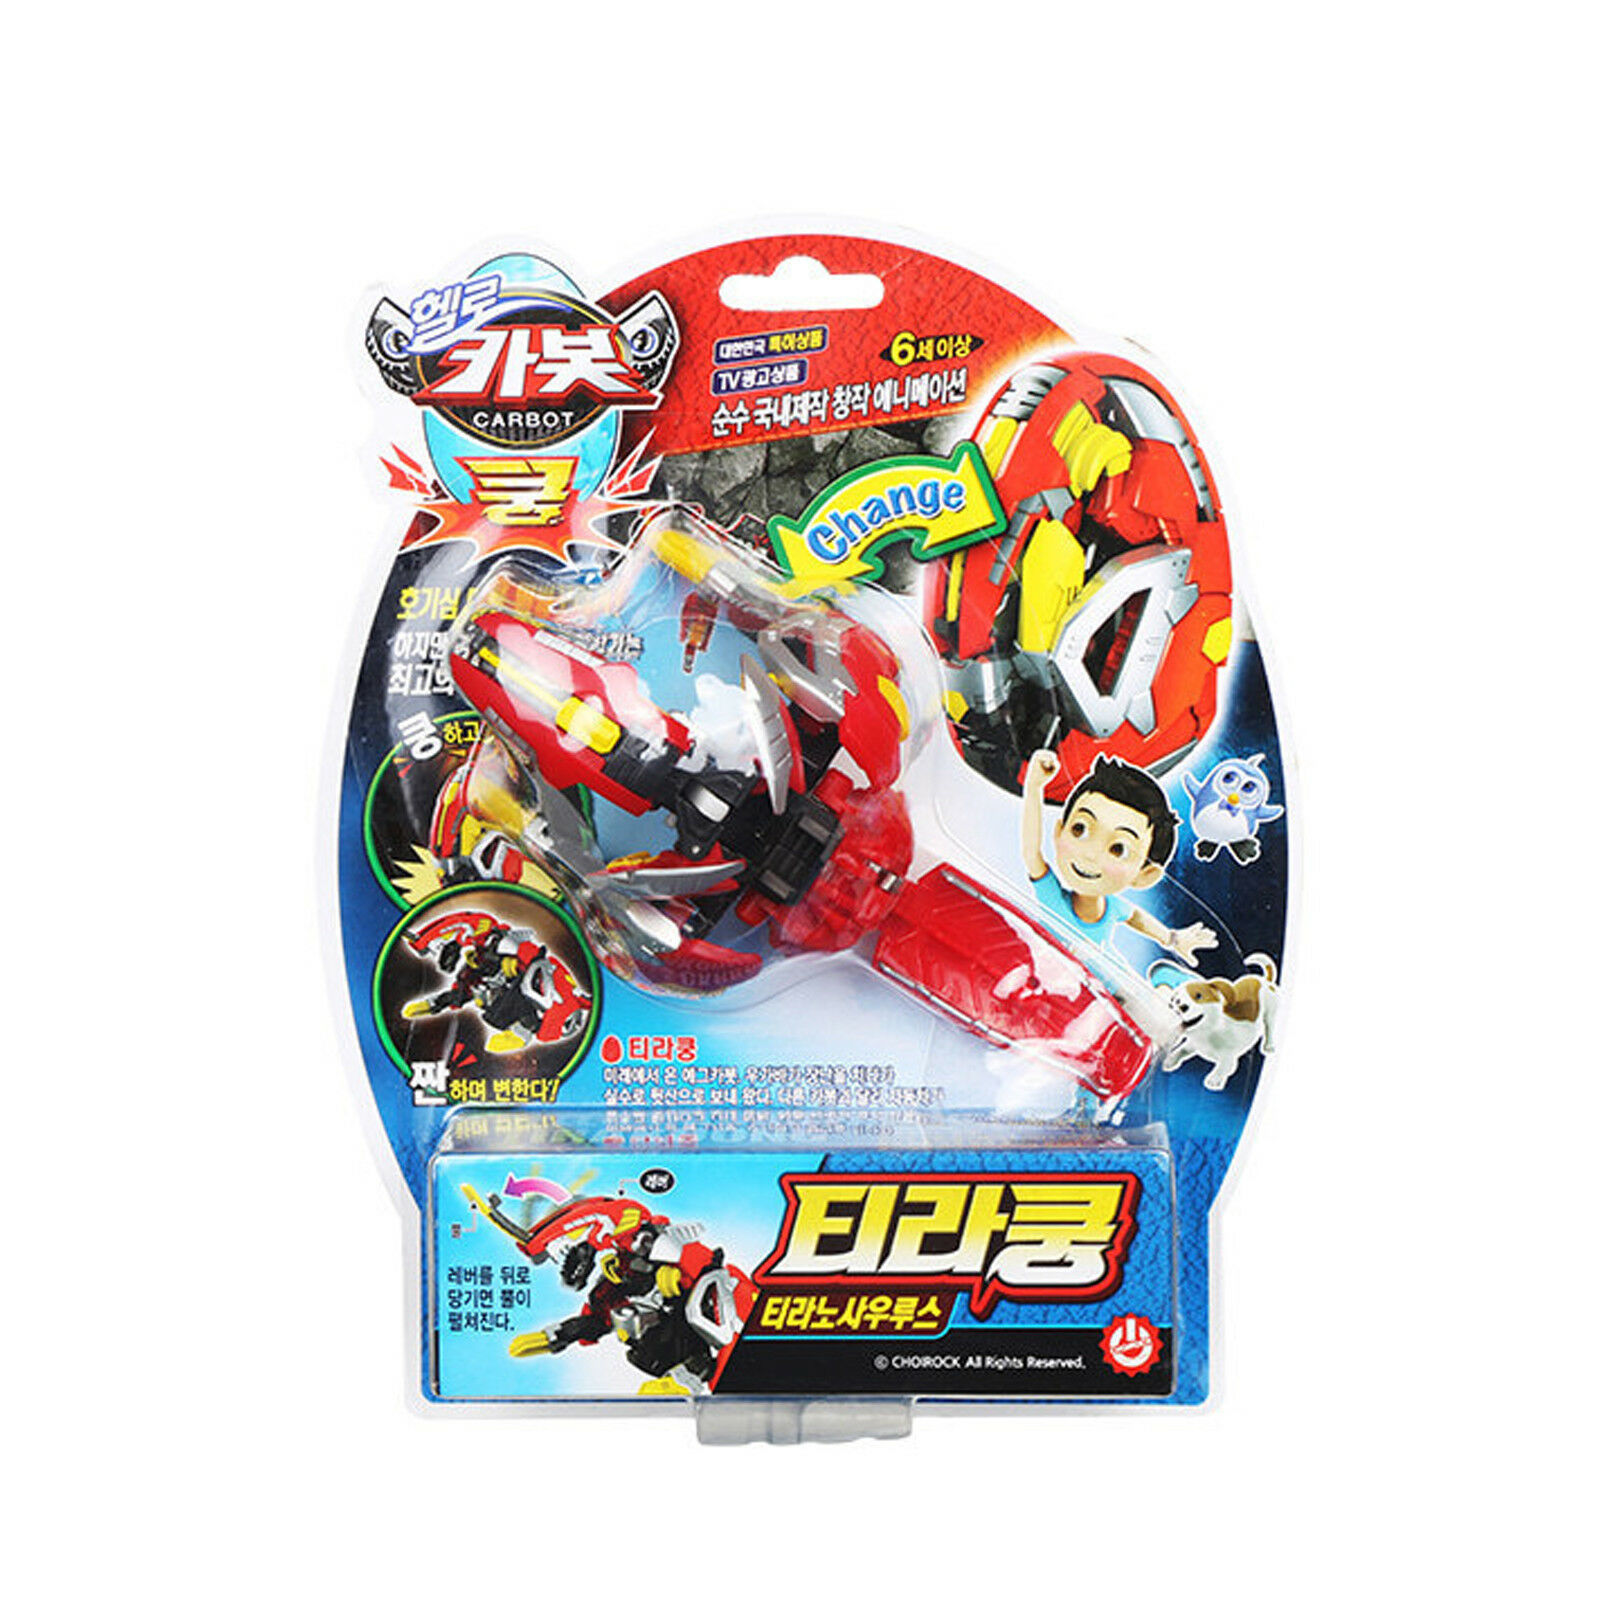 Carbot Tirakoong Transformer Robot Toy Action Figure (From Egg to Tyrannosaurus)